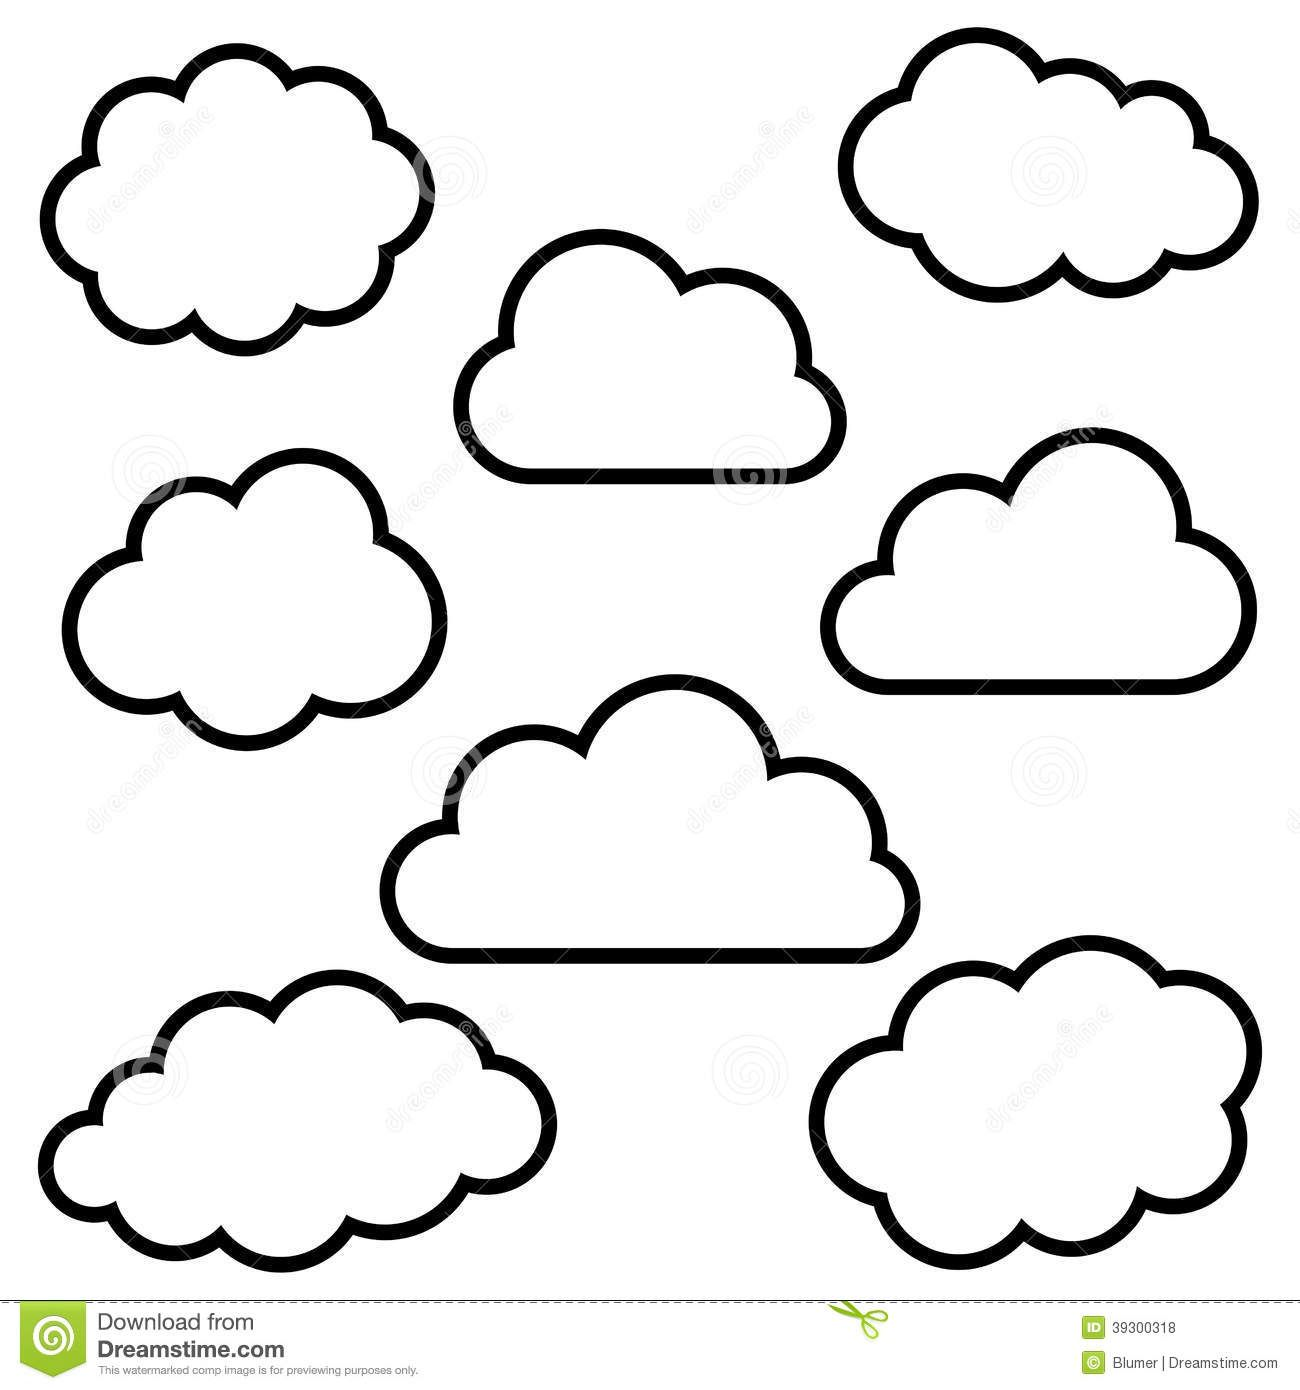 Free Download Sky Clouds Outline Clipart For Your Creation